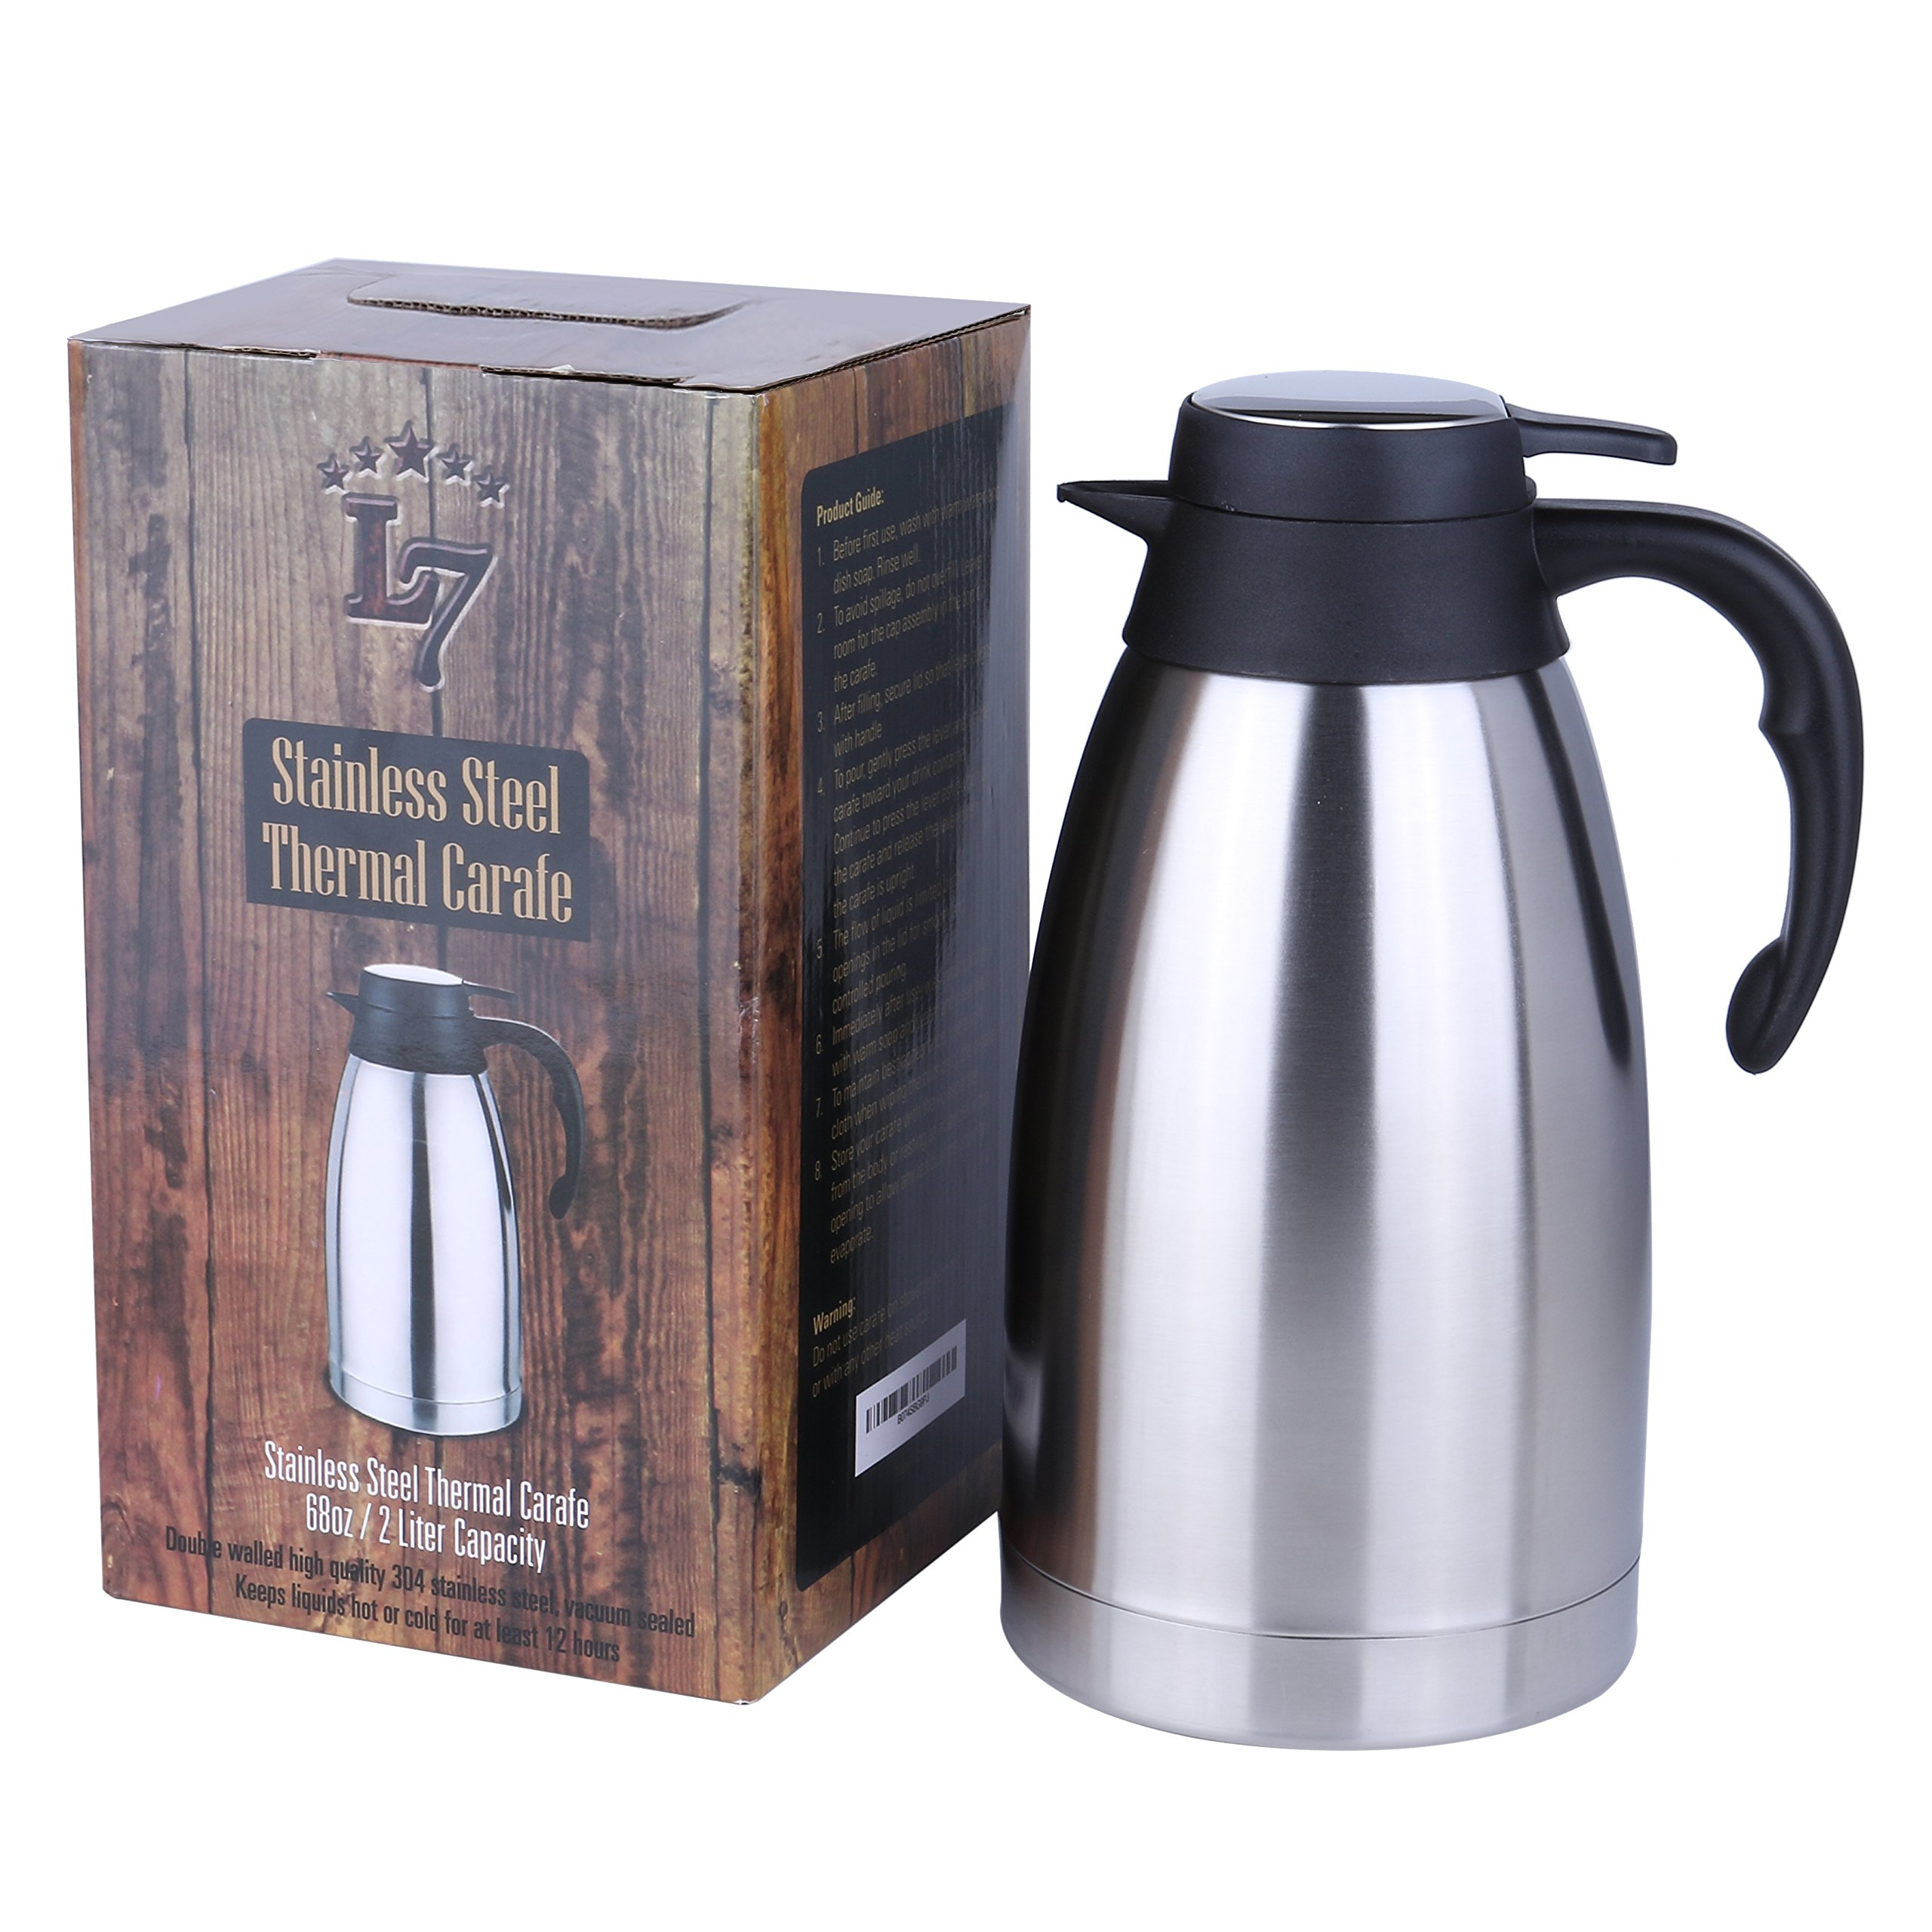 Thermal coffee carafe, coffee dispenser – Coffee thermos with lid - Coffee Carafes Keeping Hot For 12 Hours Plus – Double Walled Vacuum Sealed Coffee Pot  - 68 OZ Thermos Flask